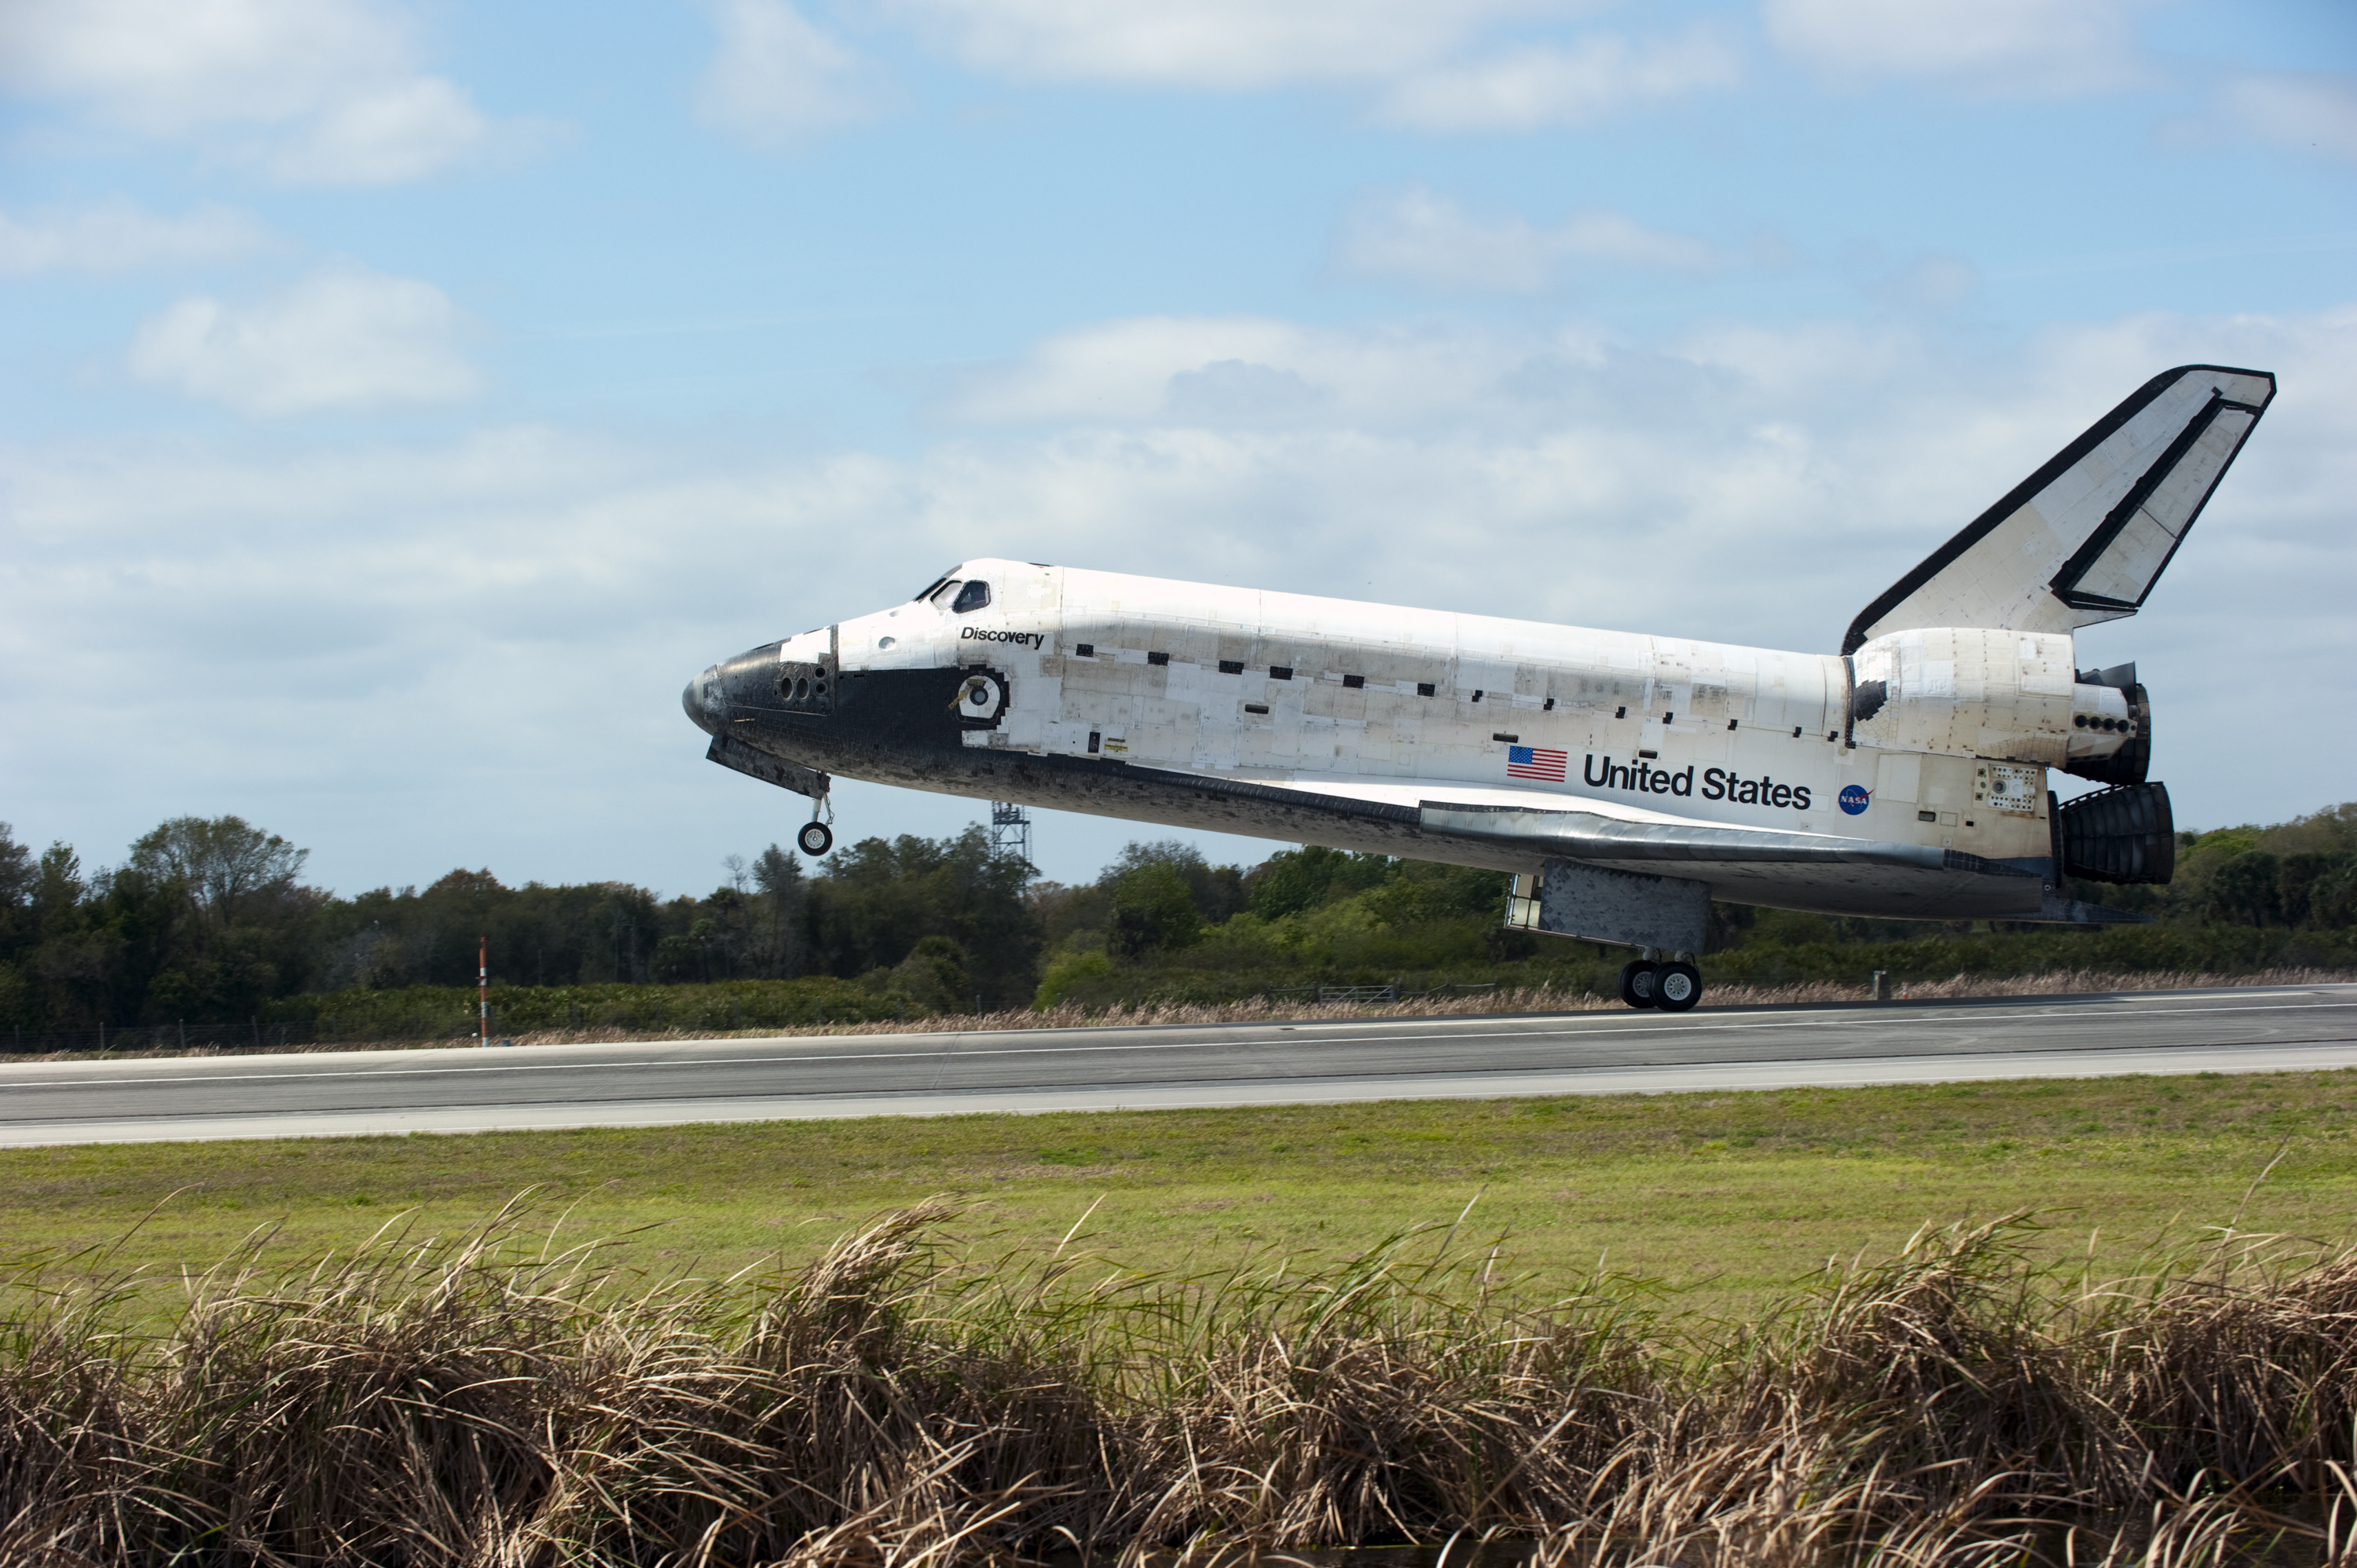 worst space shuttle landing - photo #30